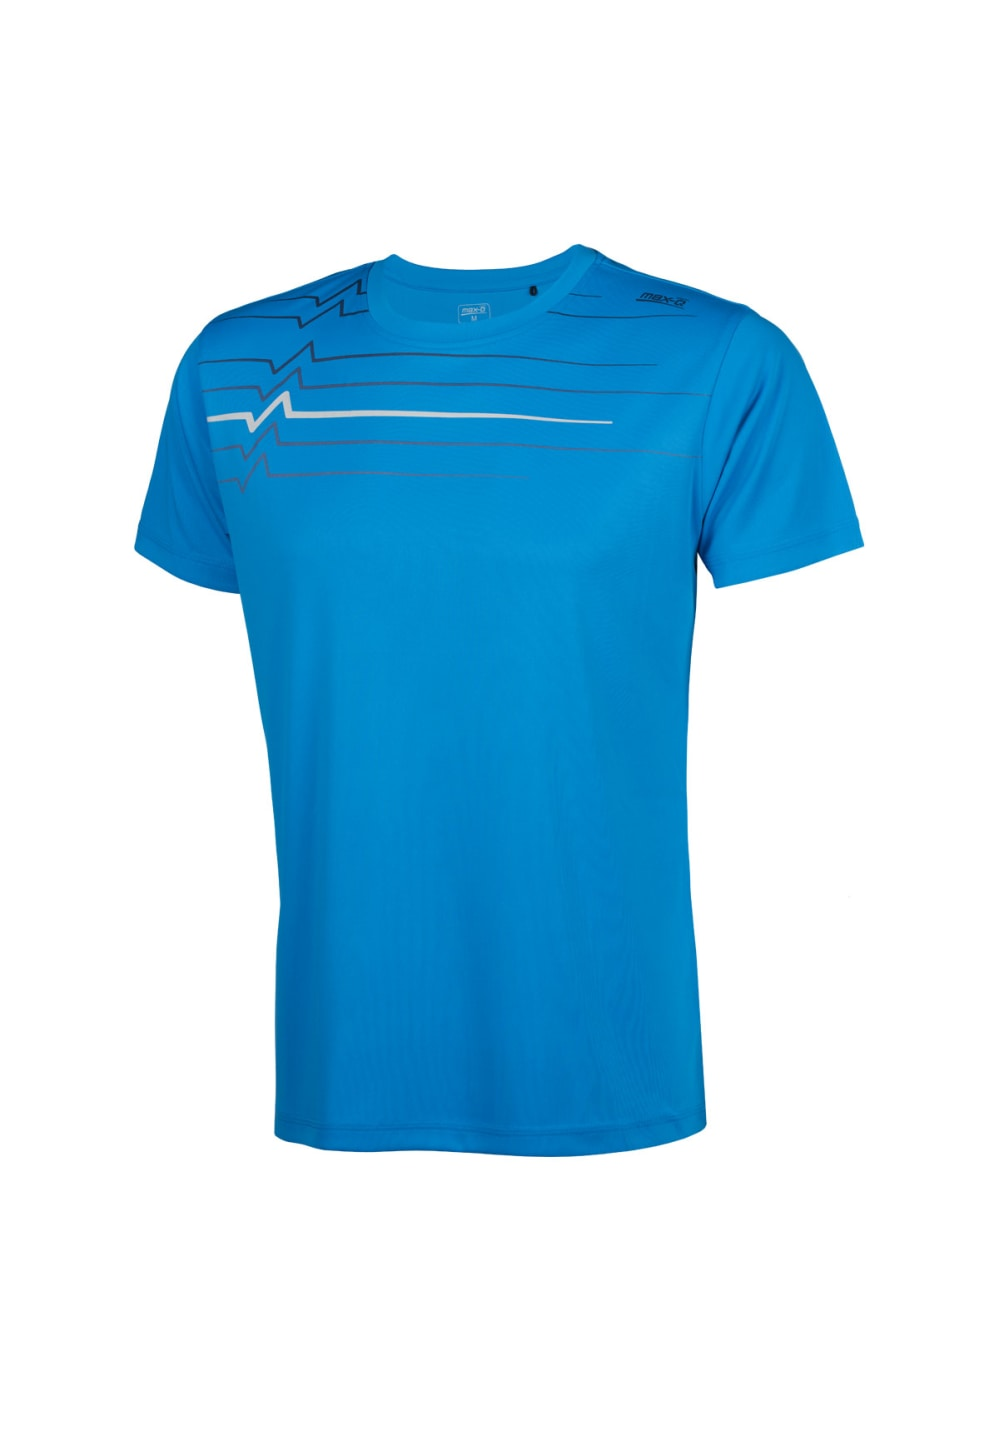 max-Q.com Athlethic Shirt Hommes Maillot course